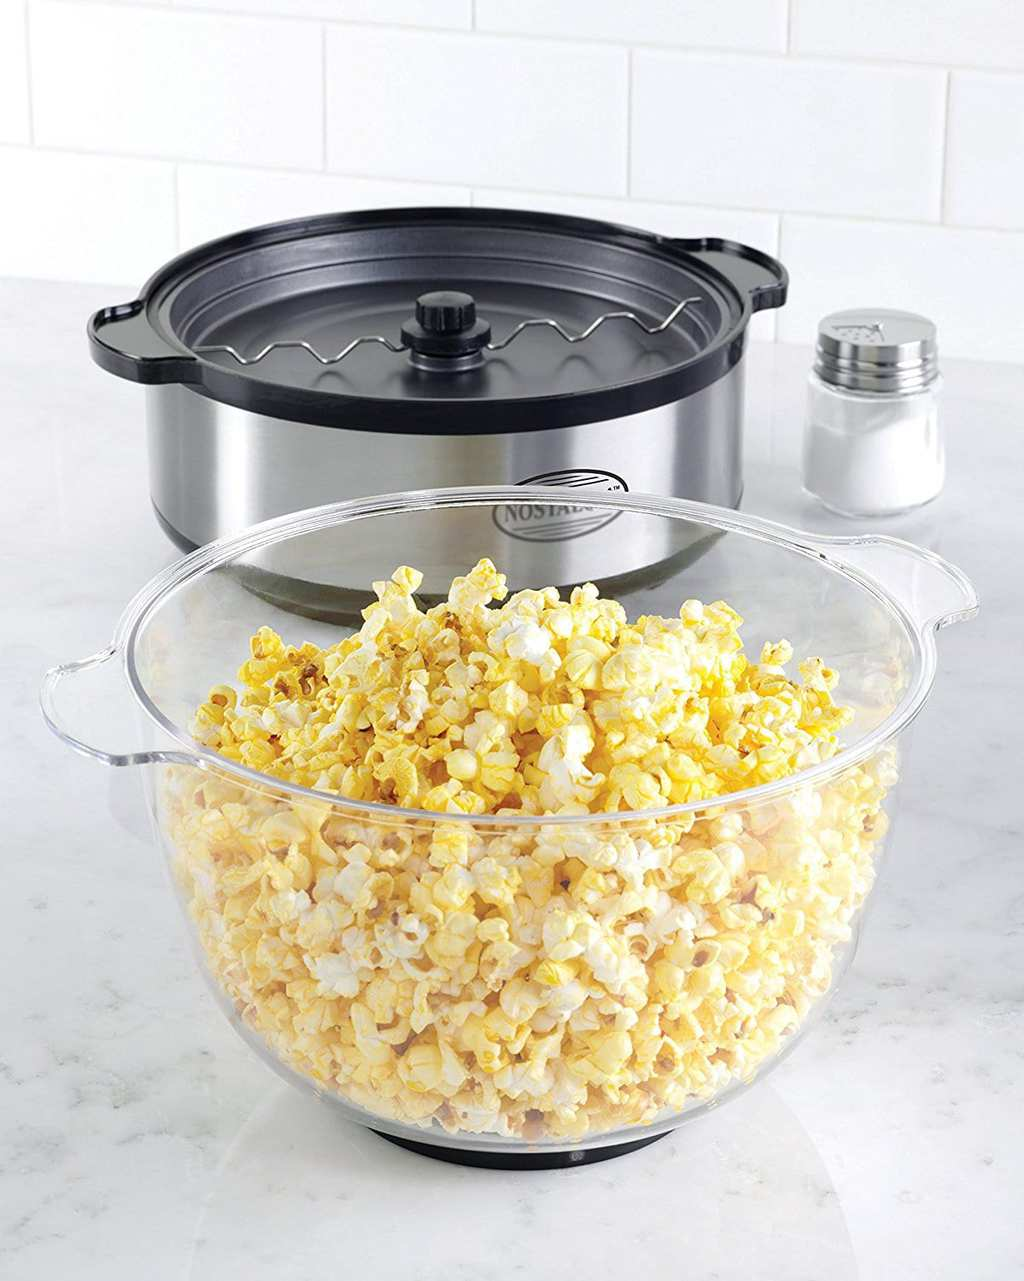 Bowl of popcorn with popper and salt.